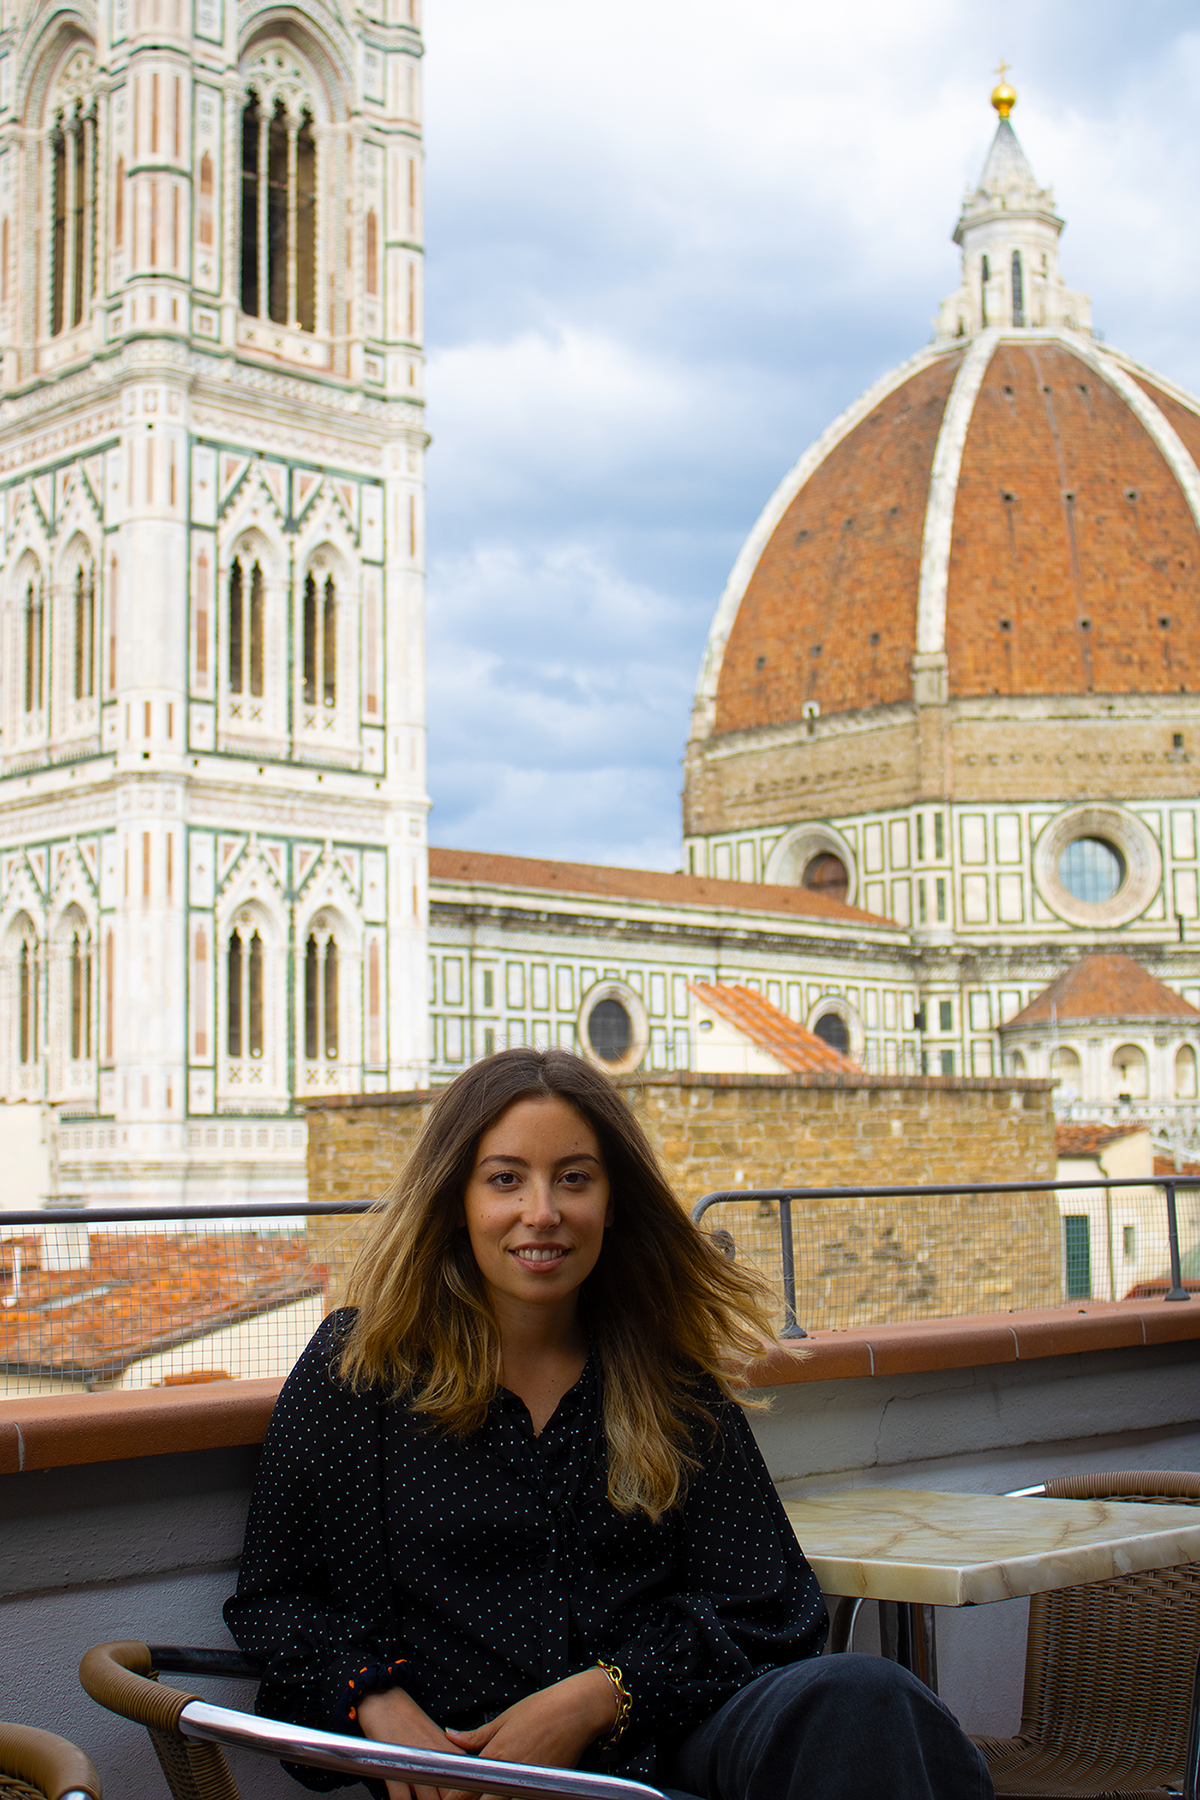 Alice Cozzi is the founder of Florence Fashion Tour